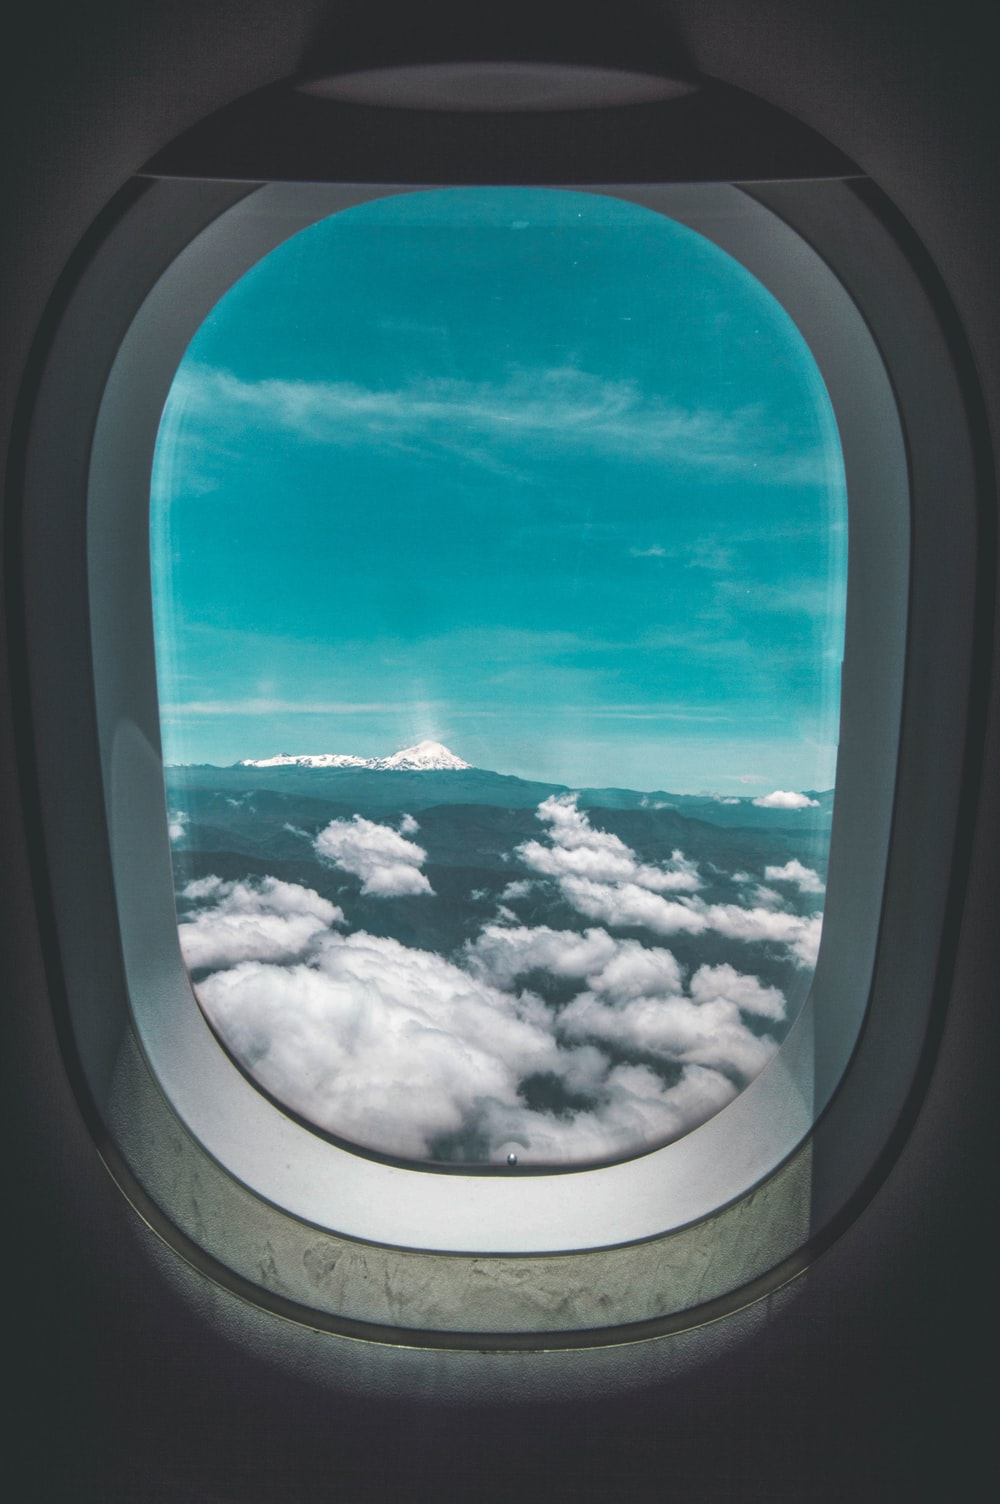 100 Plane Window Pictures Download Free Images On Unsplash